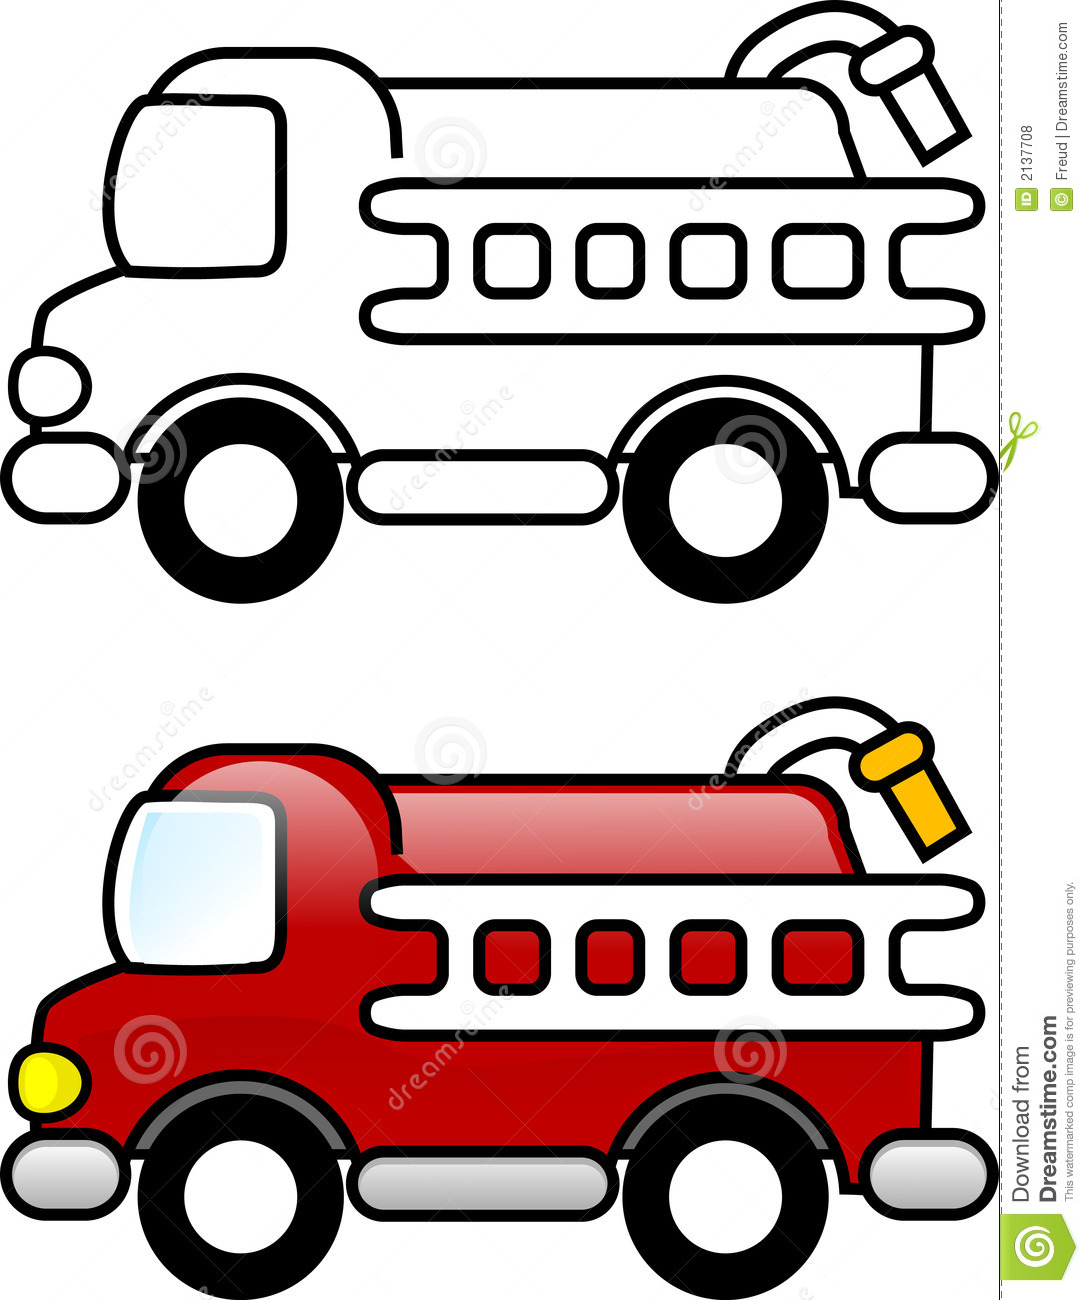 1089x1300 Free Clipart Fire Truck Fire Truck Clipart Royalty Free Vector